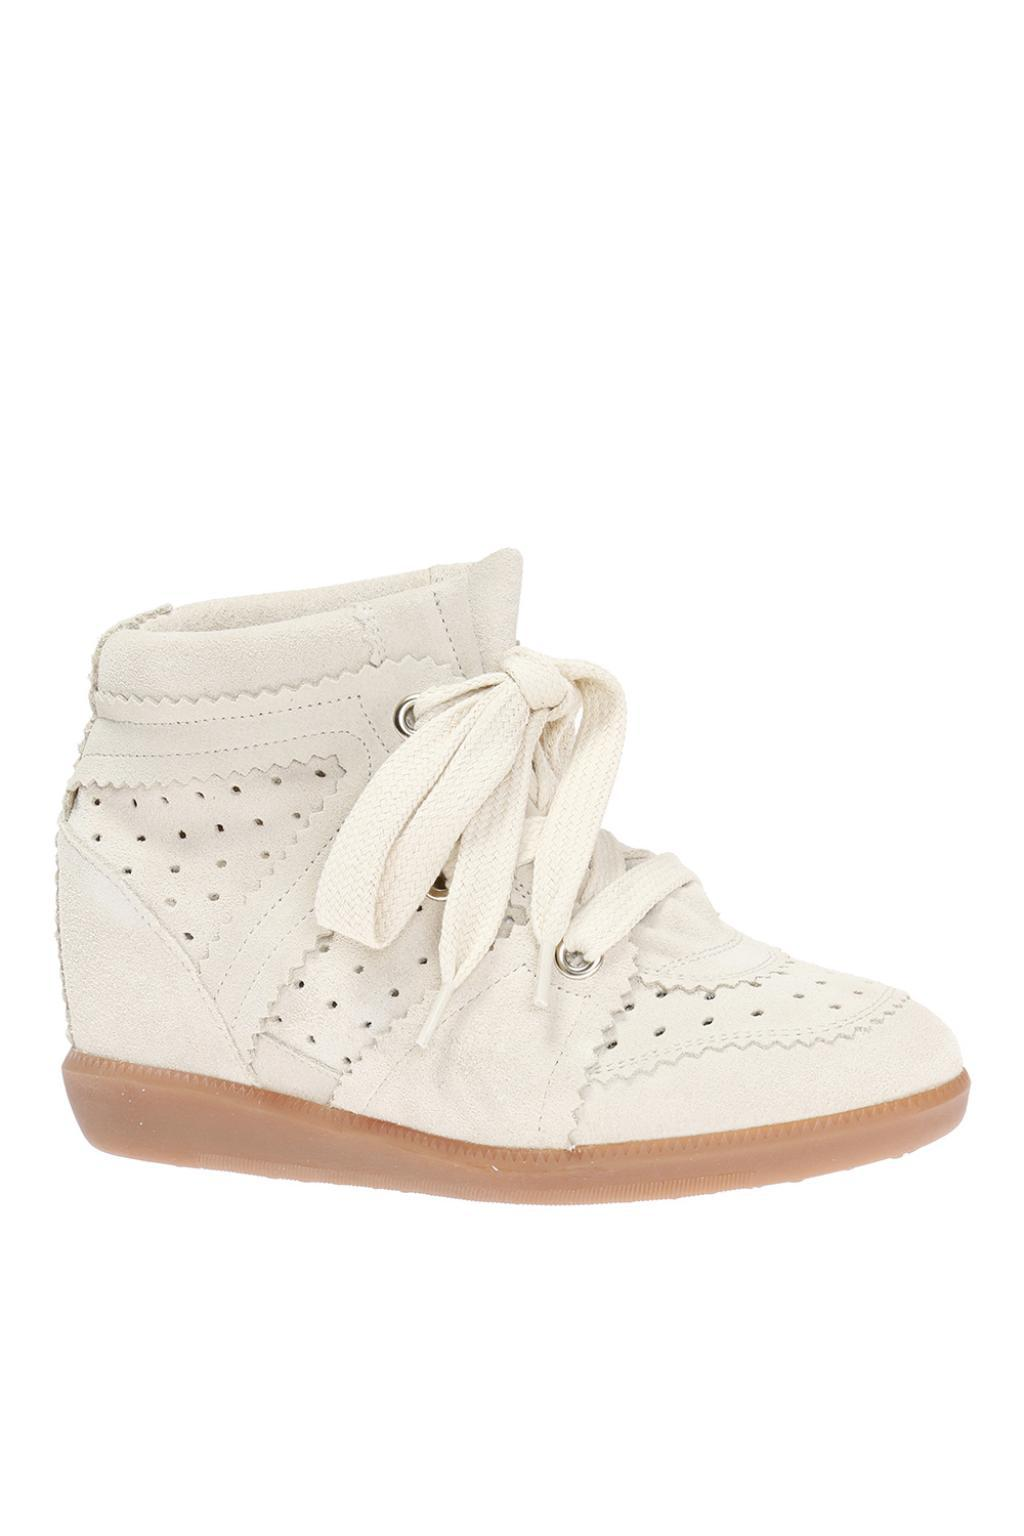 757a5edae0b Isabel Marant - White 'bobby' Wedge Sneakers - Lyst. View fullscreen